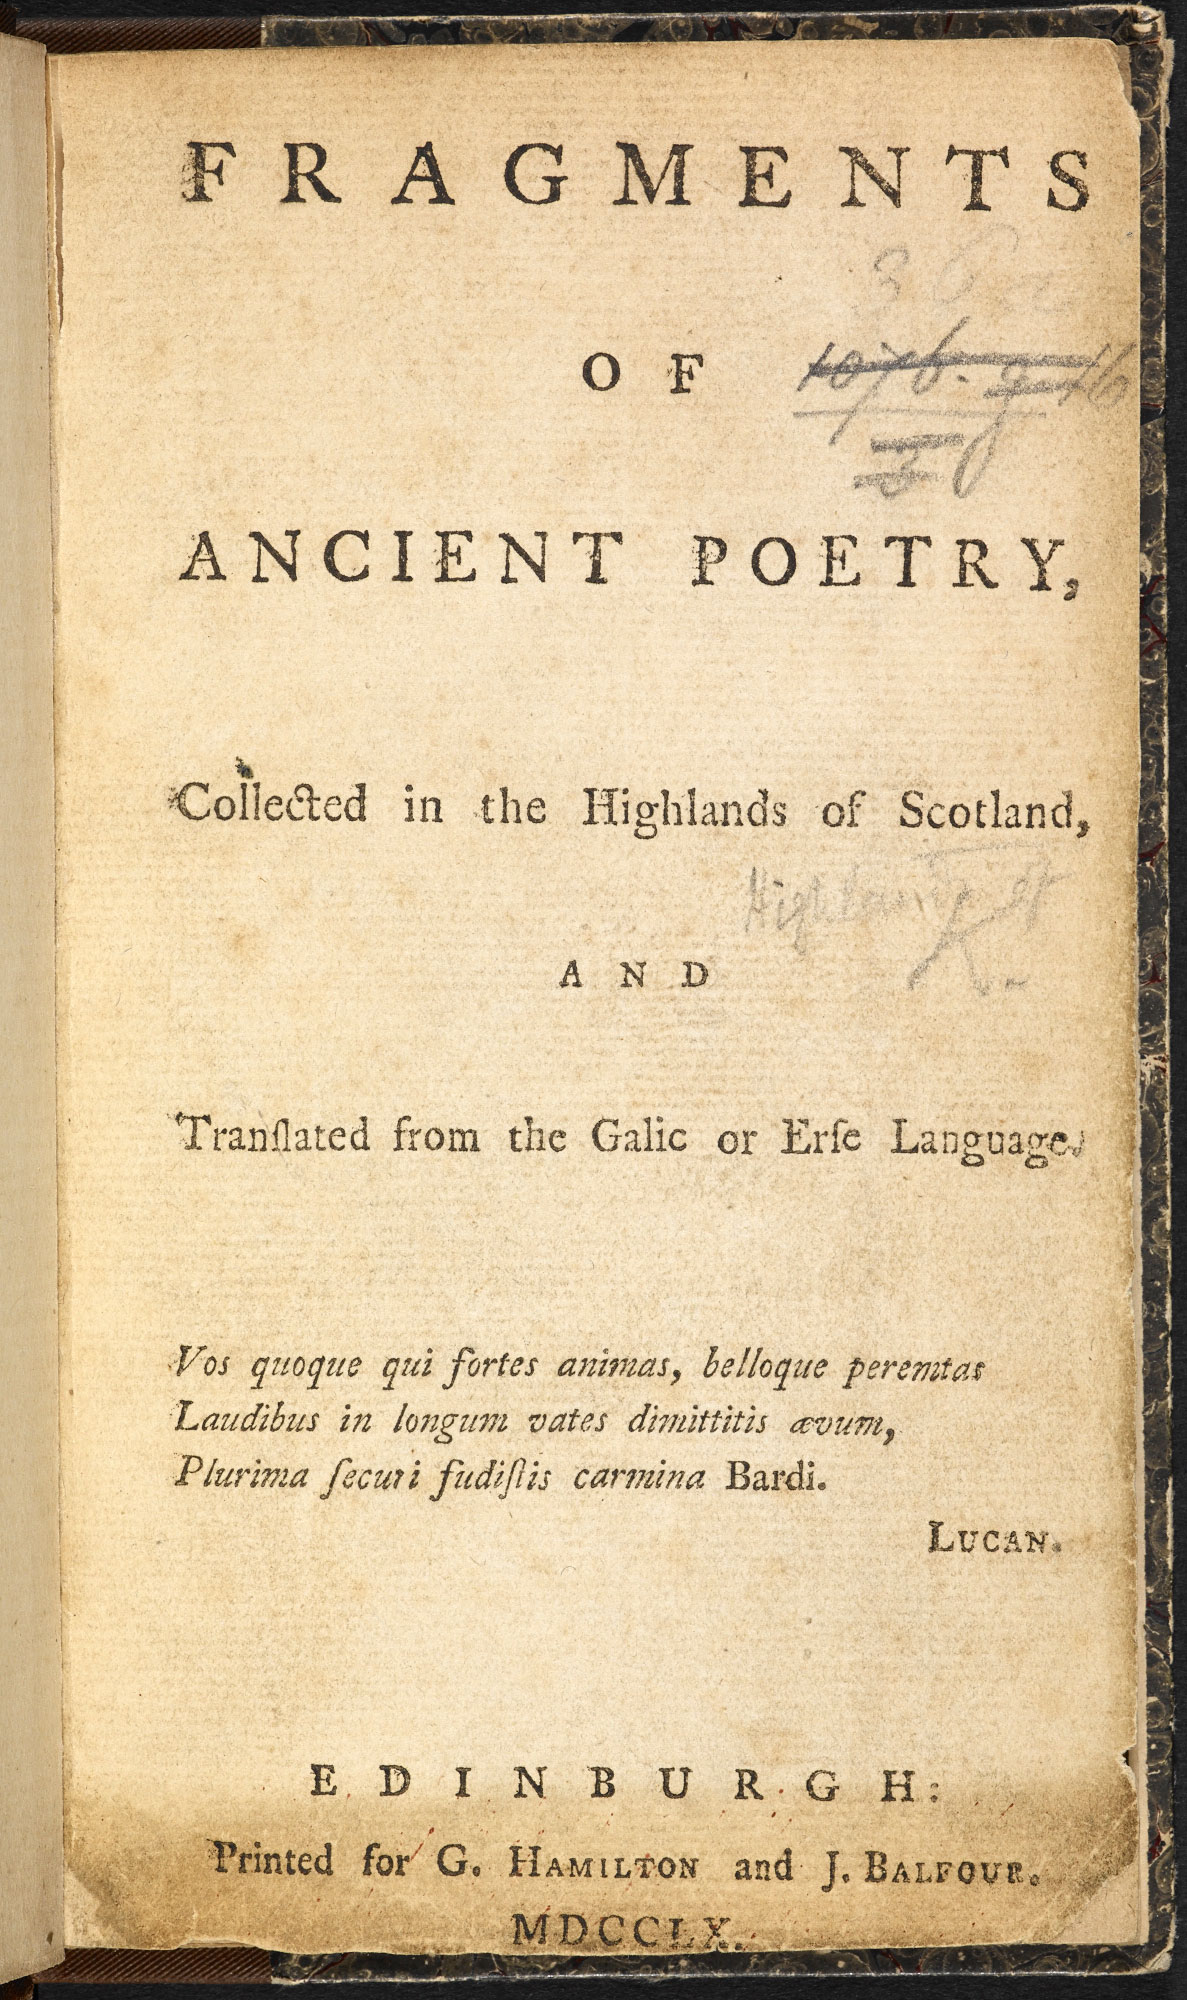 Fragments of Ossian, an invented early Scots epic poem